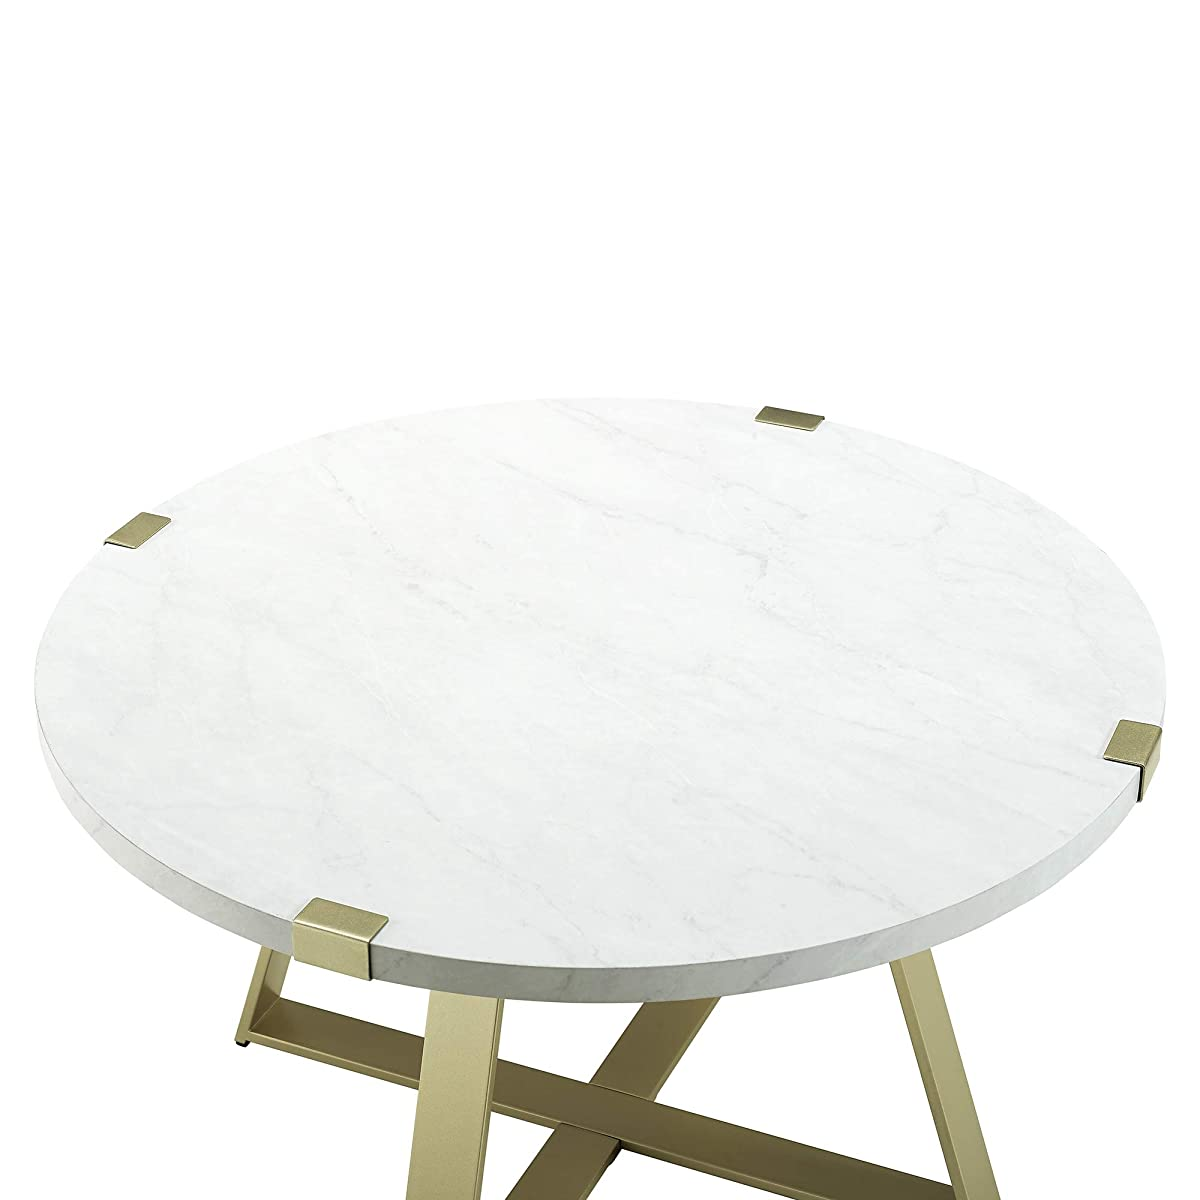 WE Furniture AZF30MWCTMG Coffee Table White Faux Marble/Gold